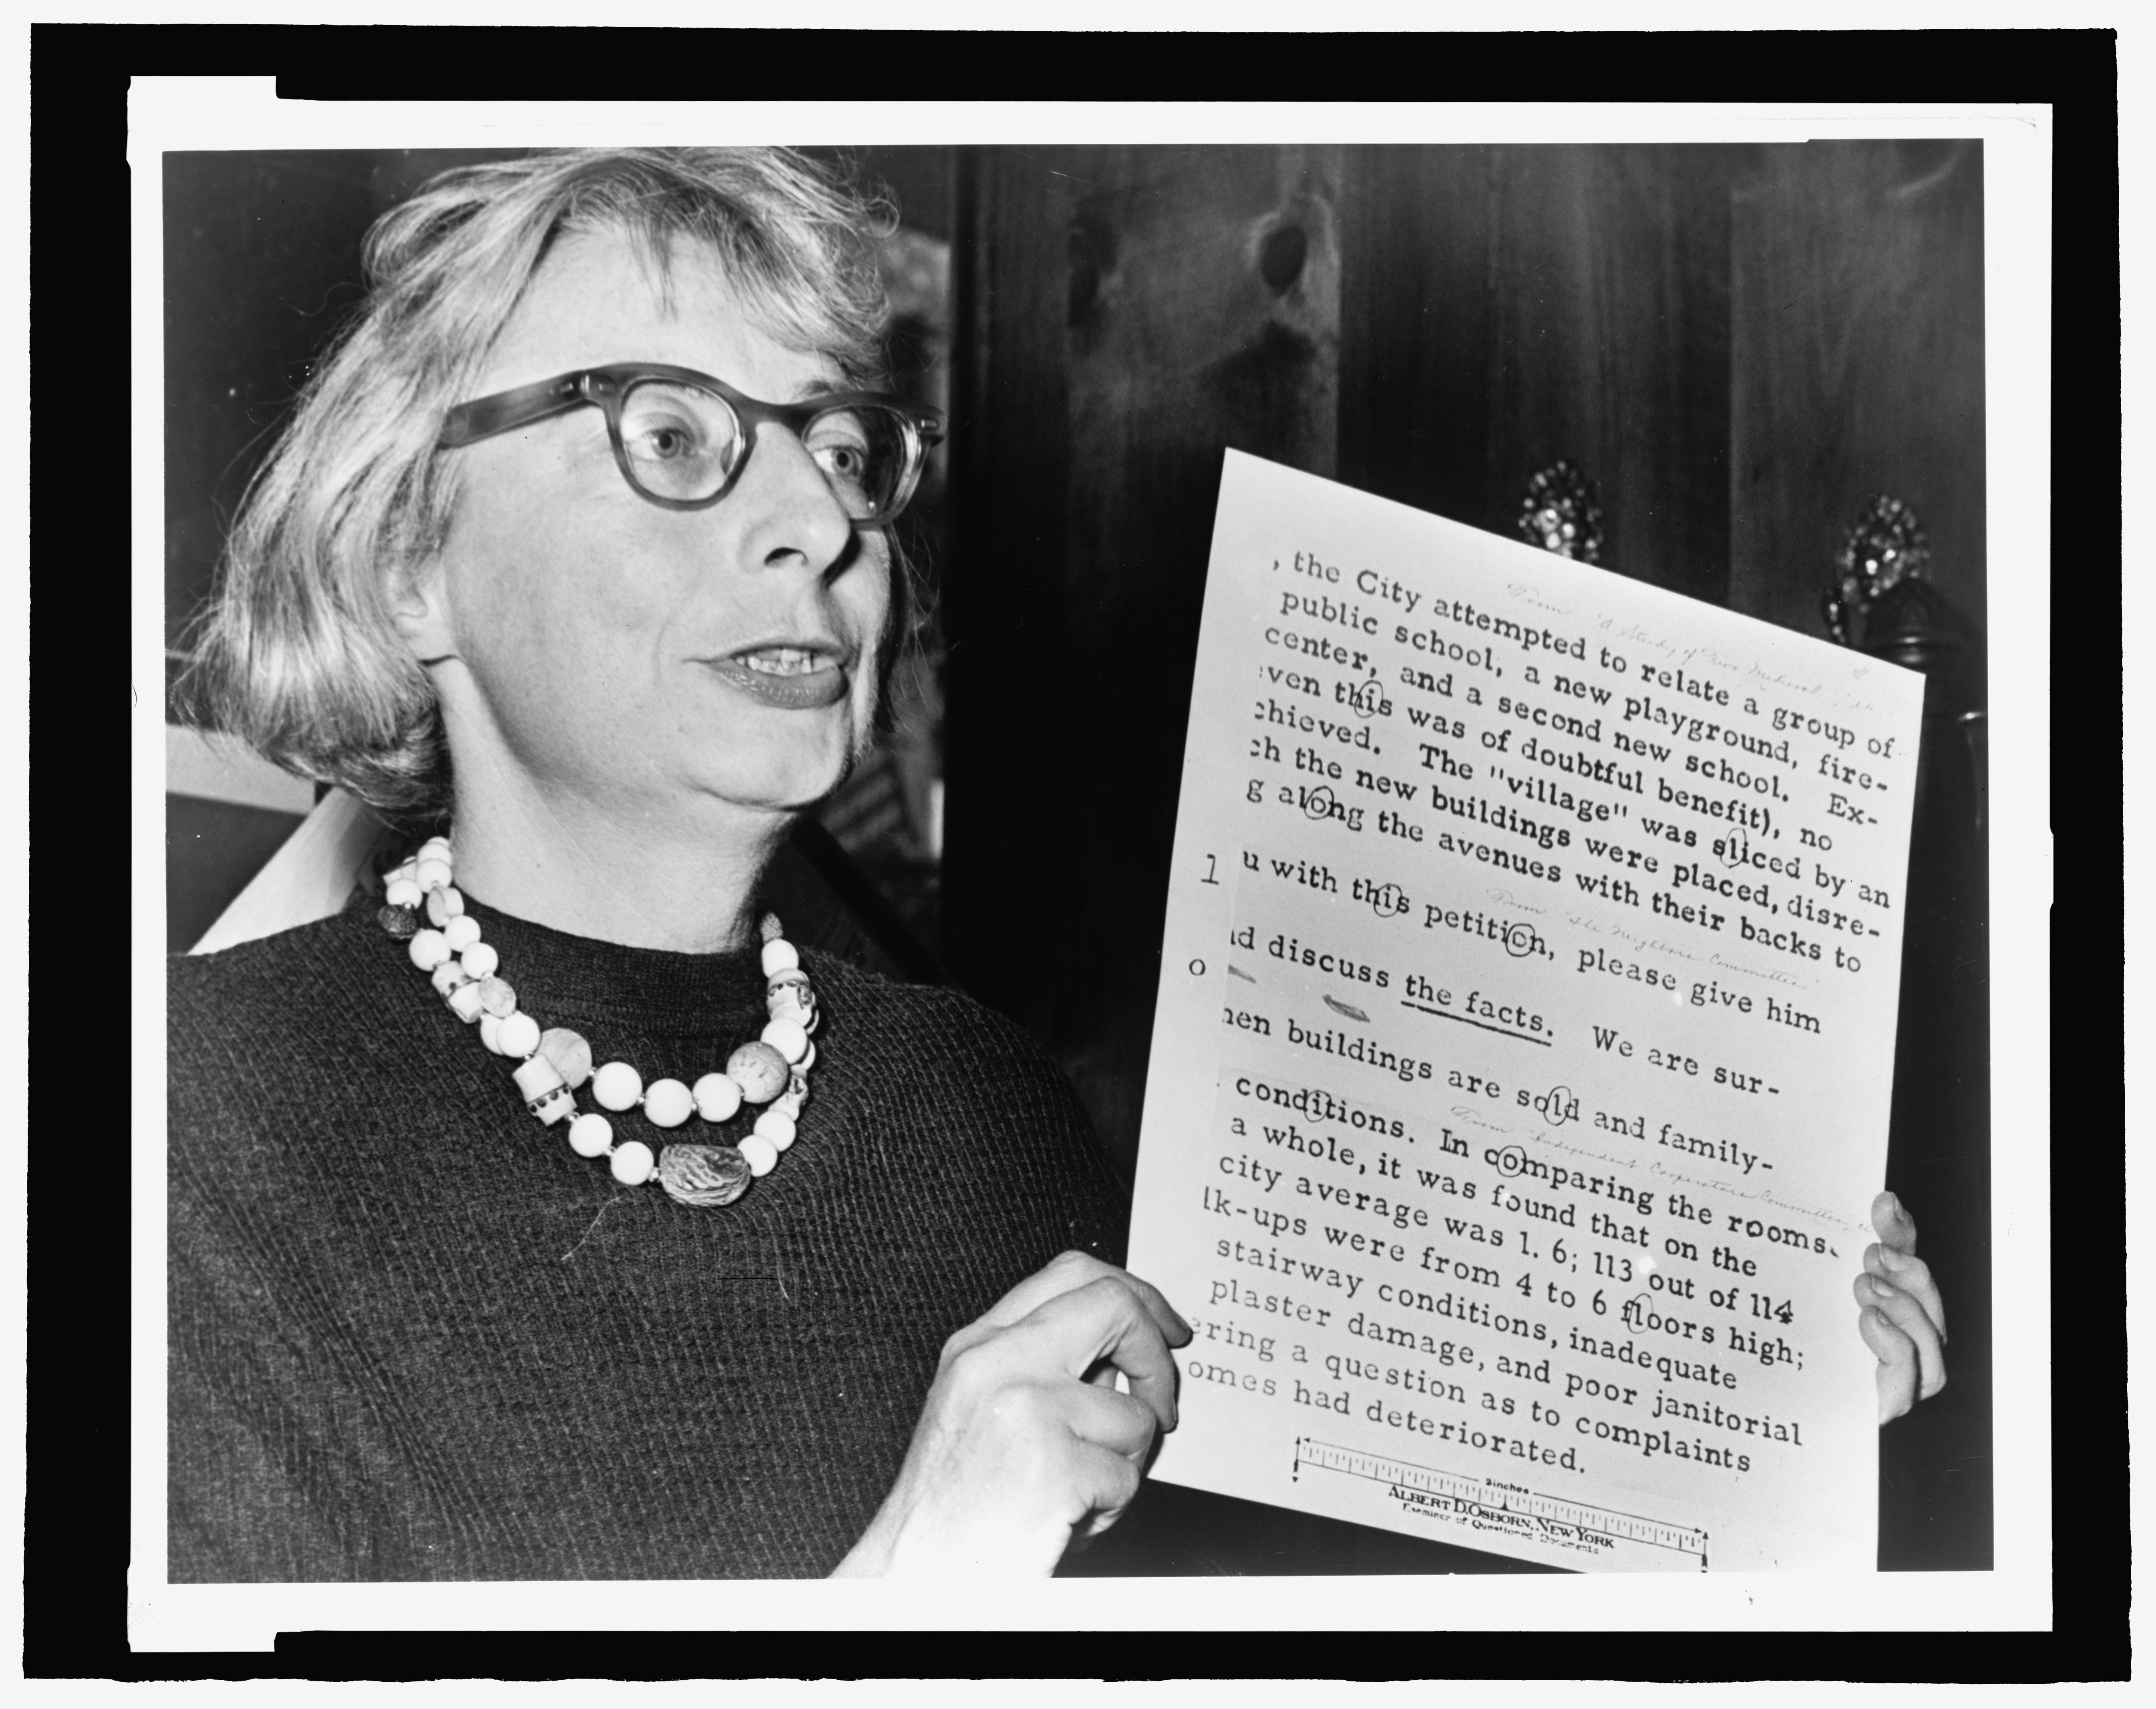 A black-and-white photograph shows a middle-aged, light-skinned woman holding a printed document aloft. It appears as though the woman is speaking.